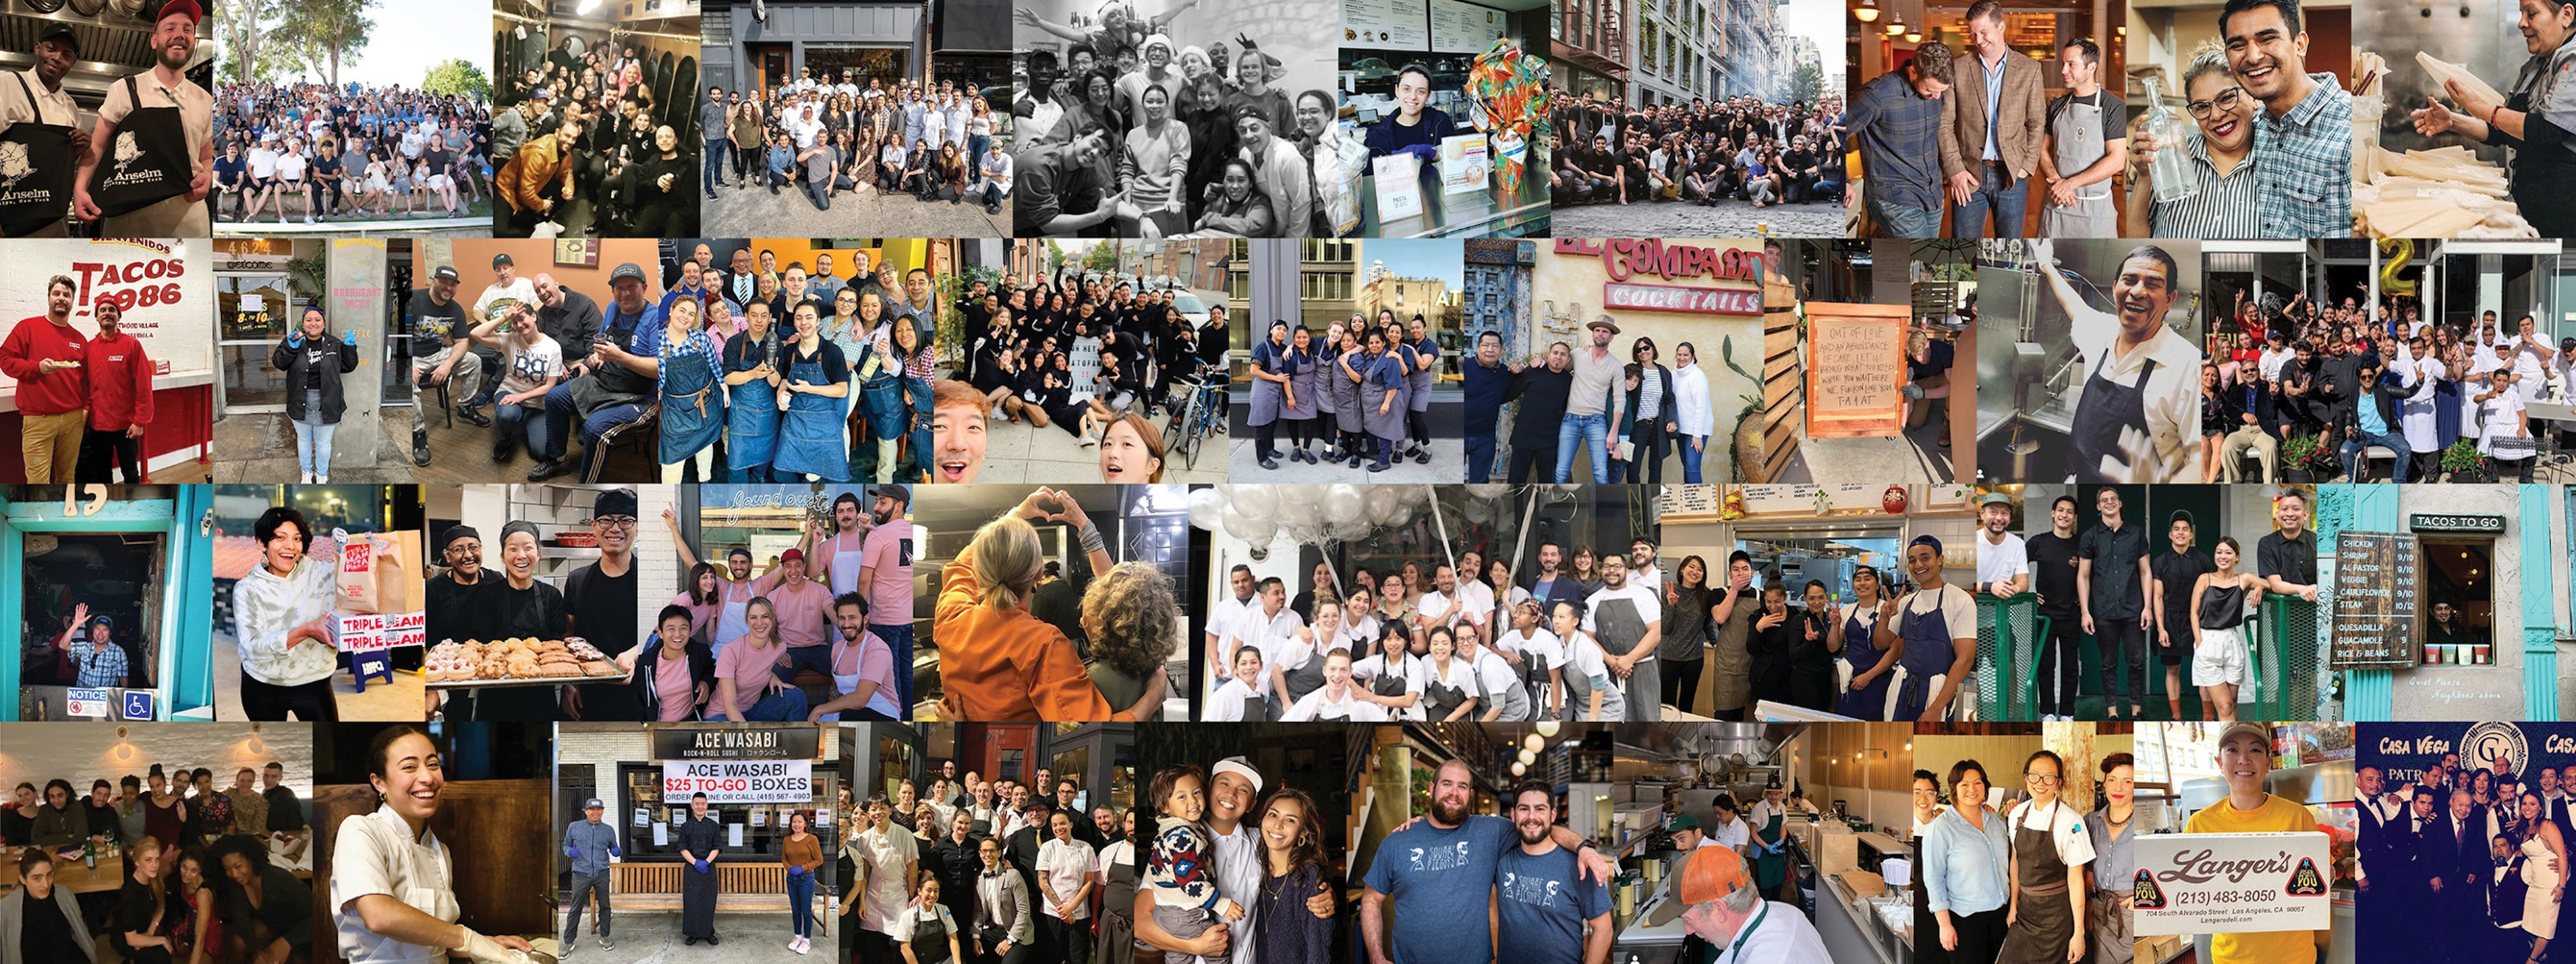 40 NYC Restaurants Giving Back To The Community - New York - The Infatuation